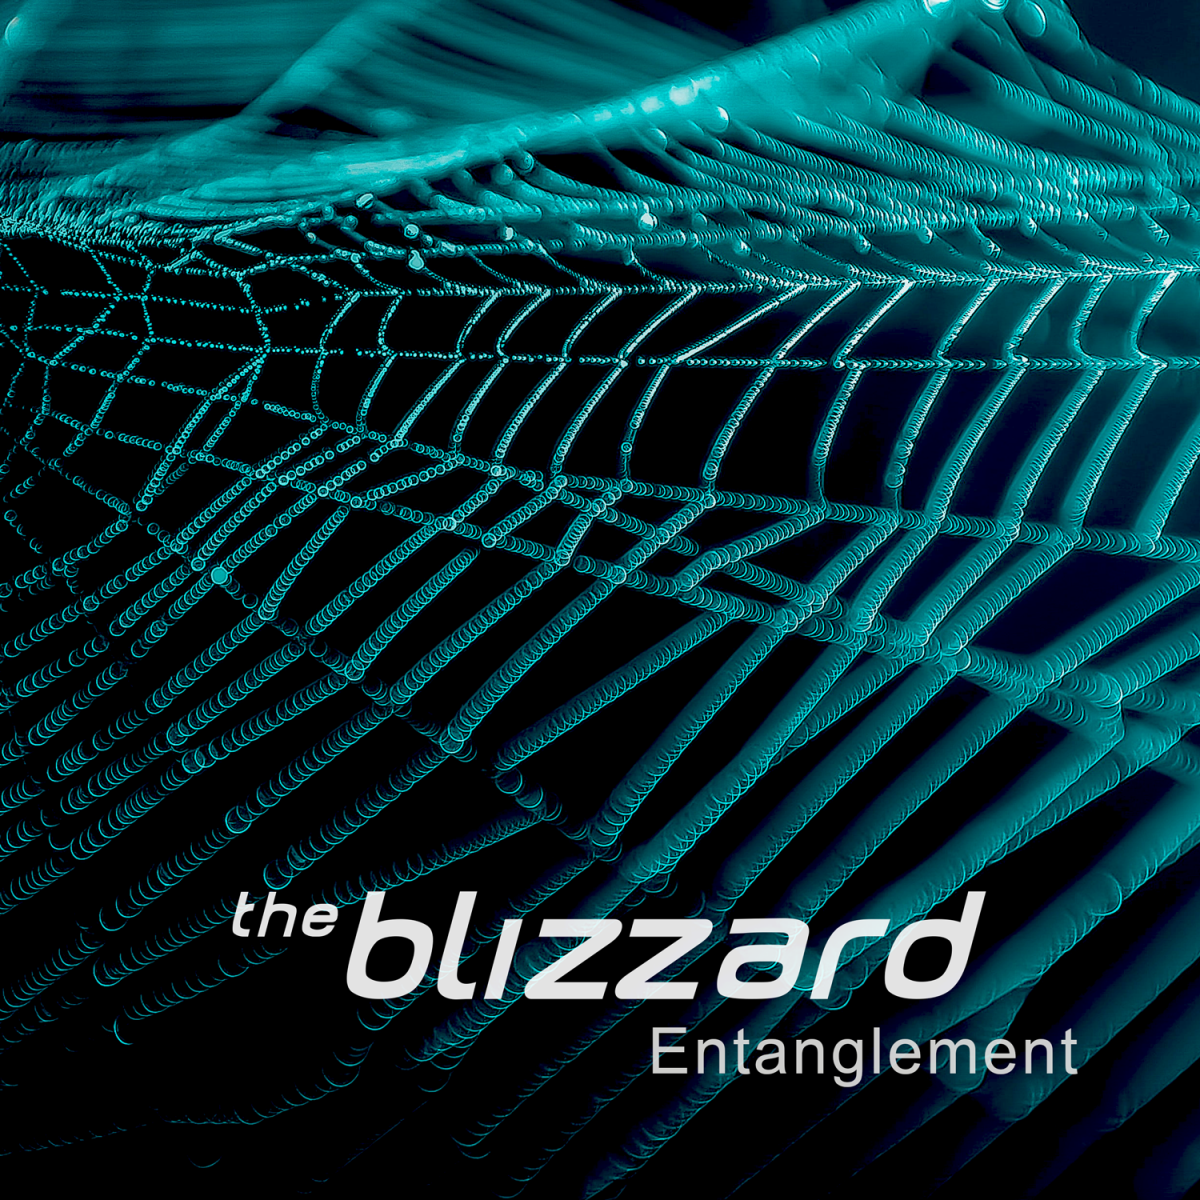 The Blizzard - Entanglement on FSOE Chill (Patreon Artwork)